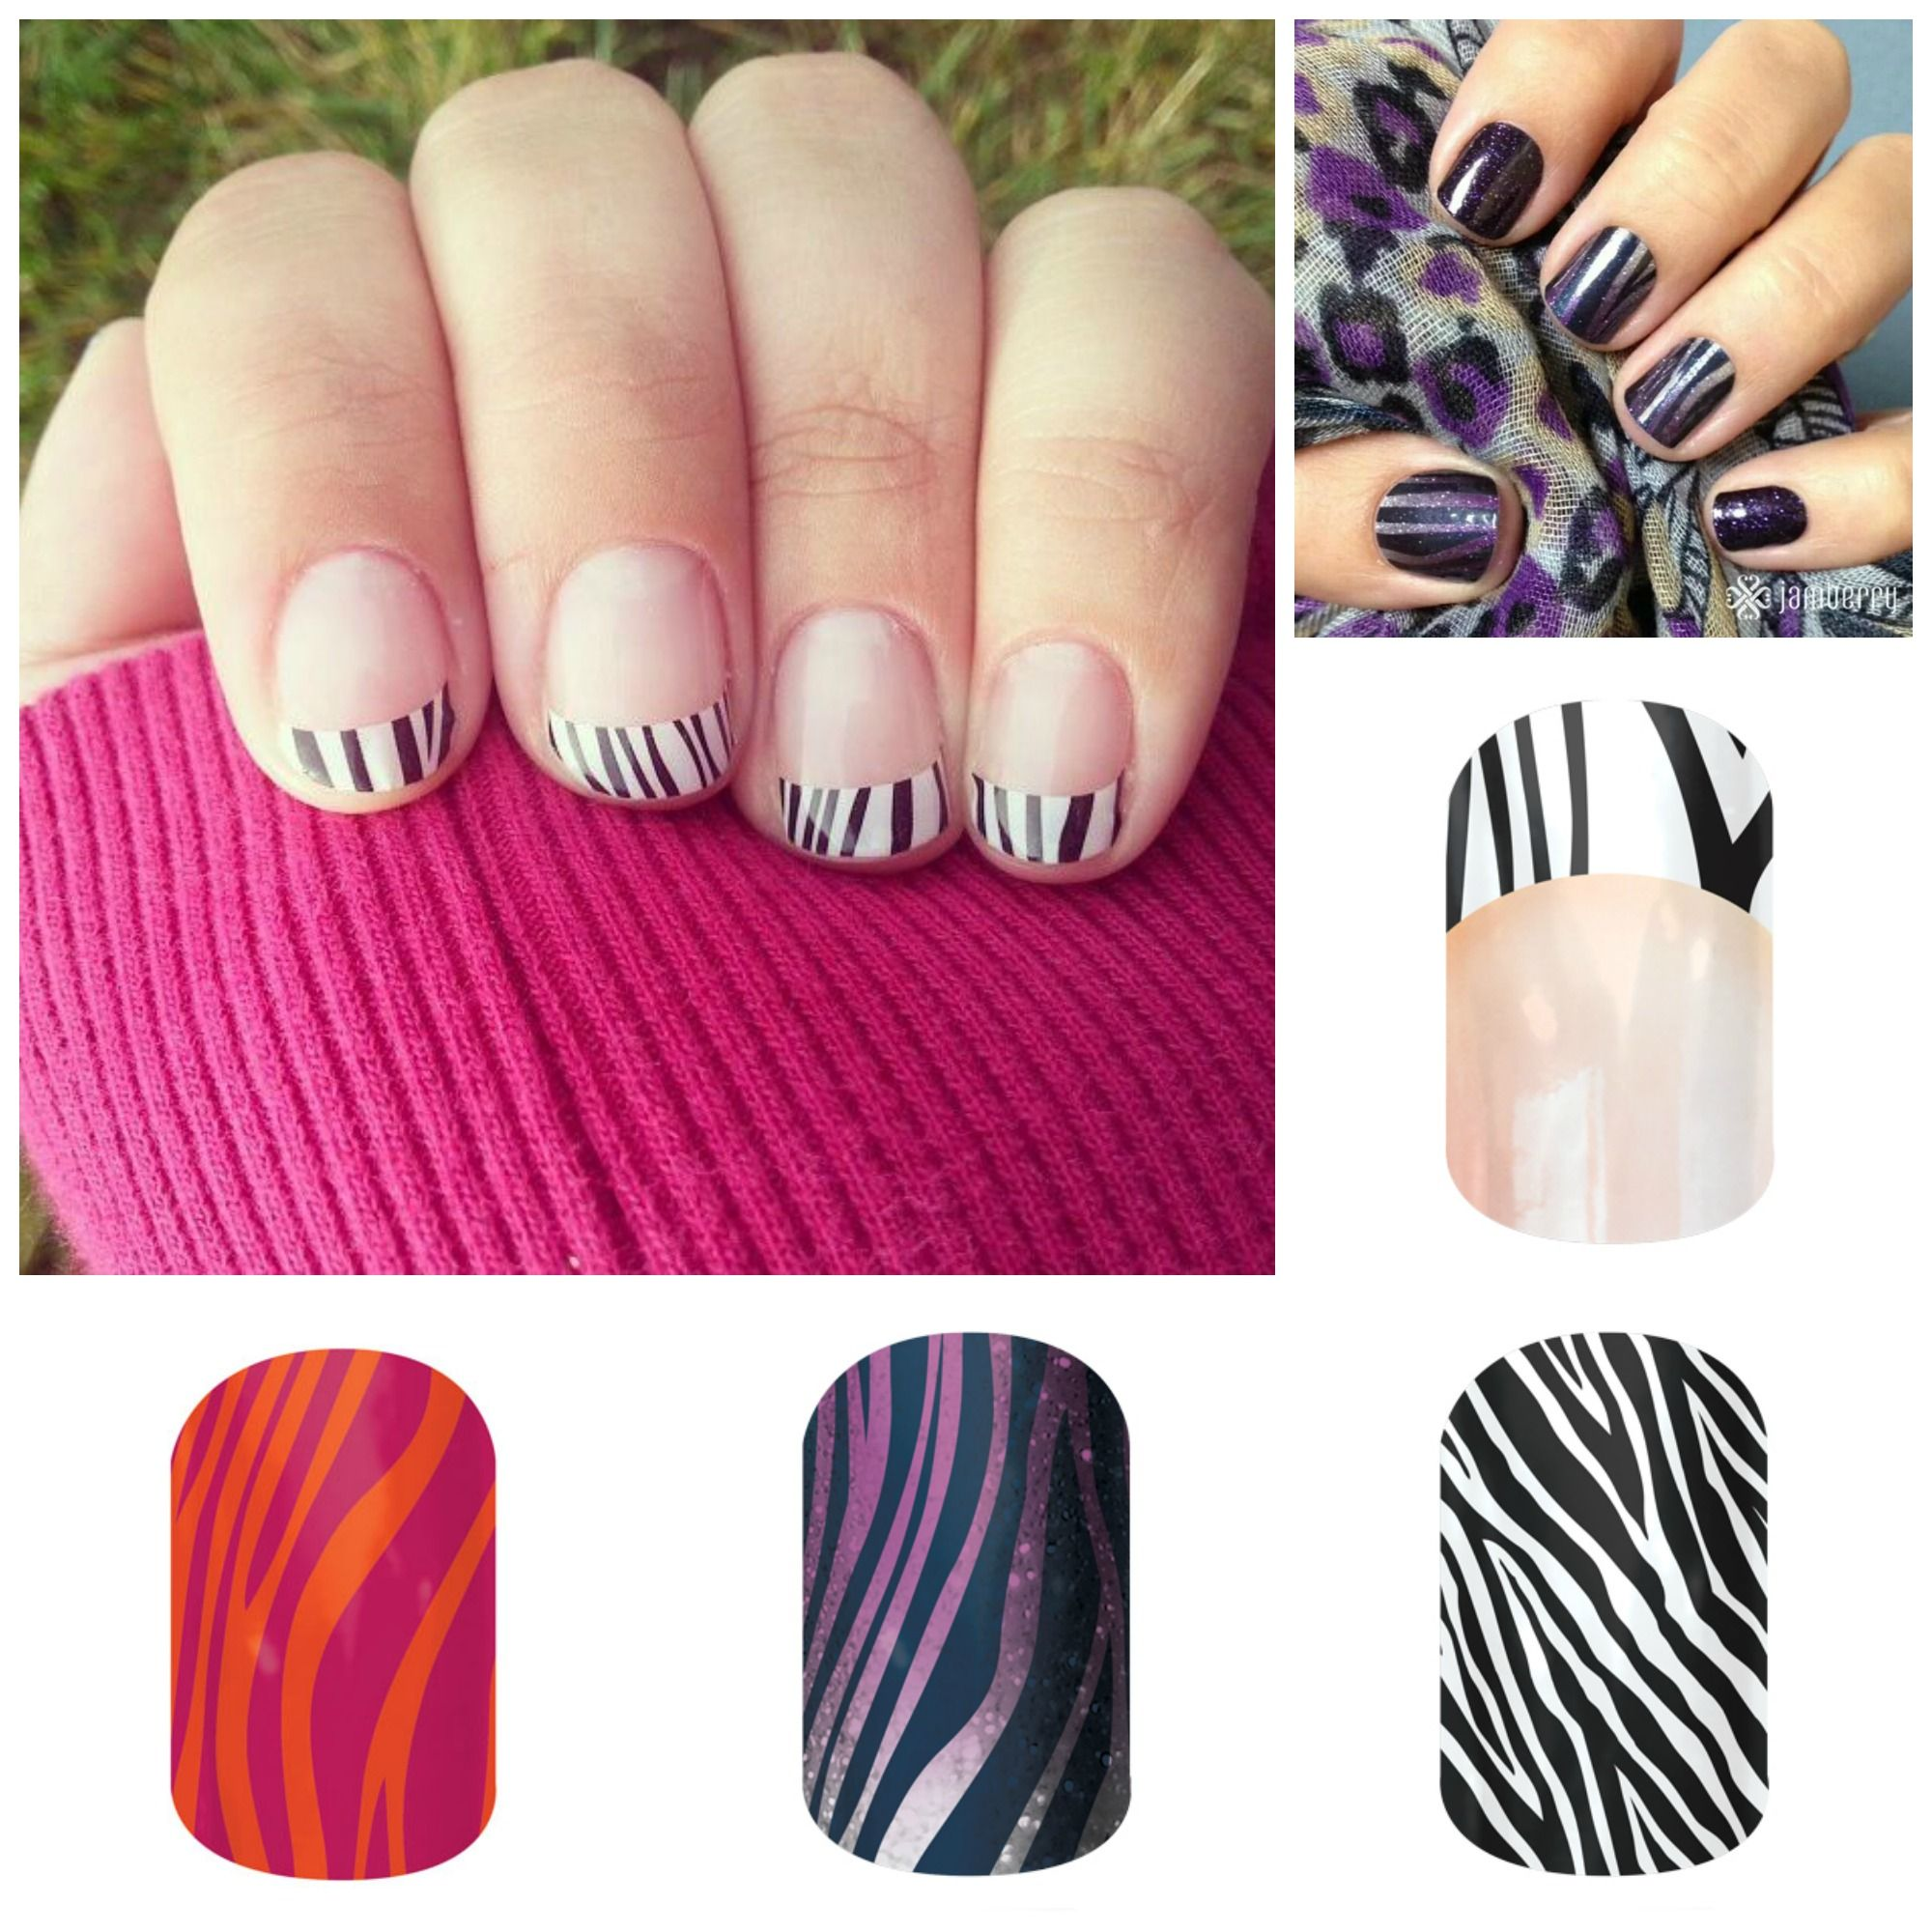 Ehlers Danlos Syndrome is often represented by a Zebra, and those ...